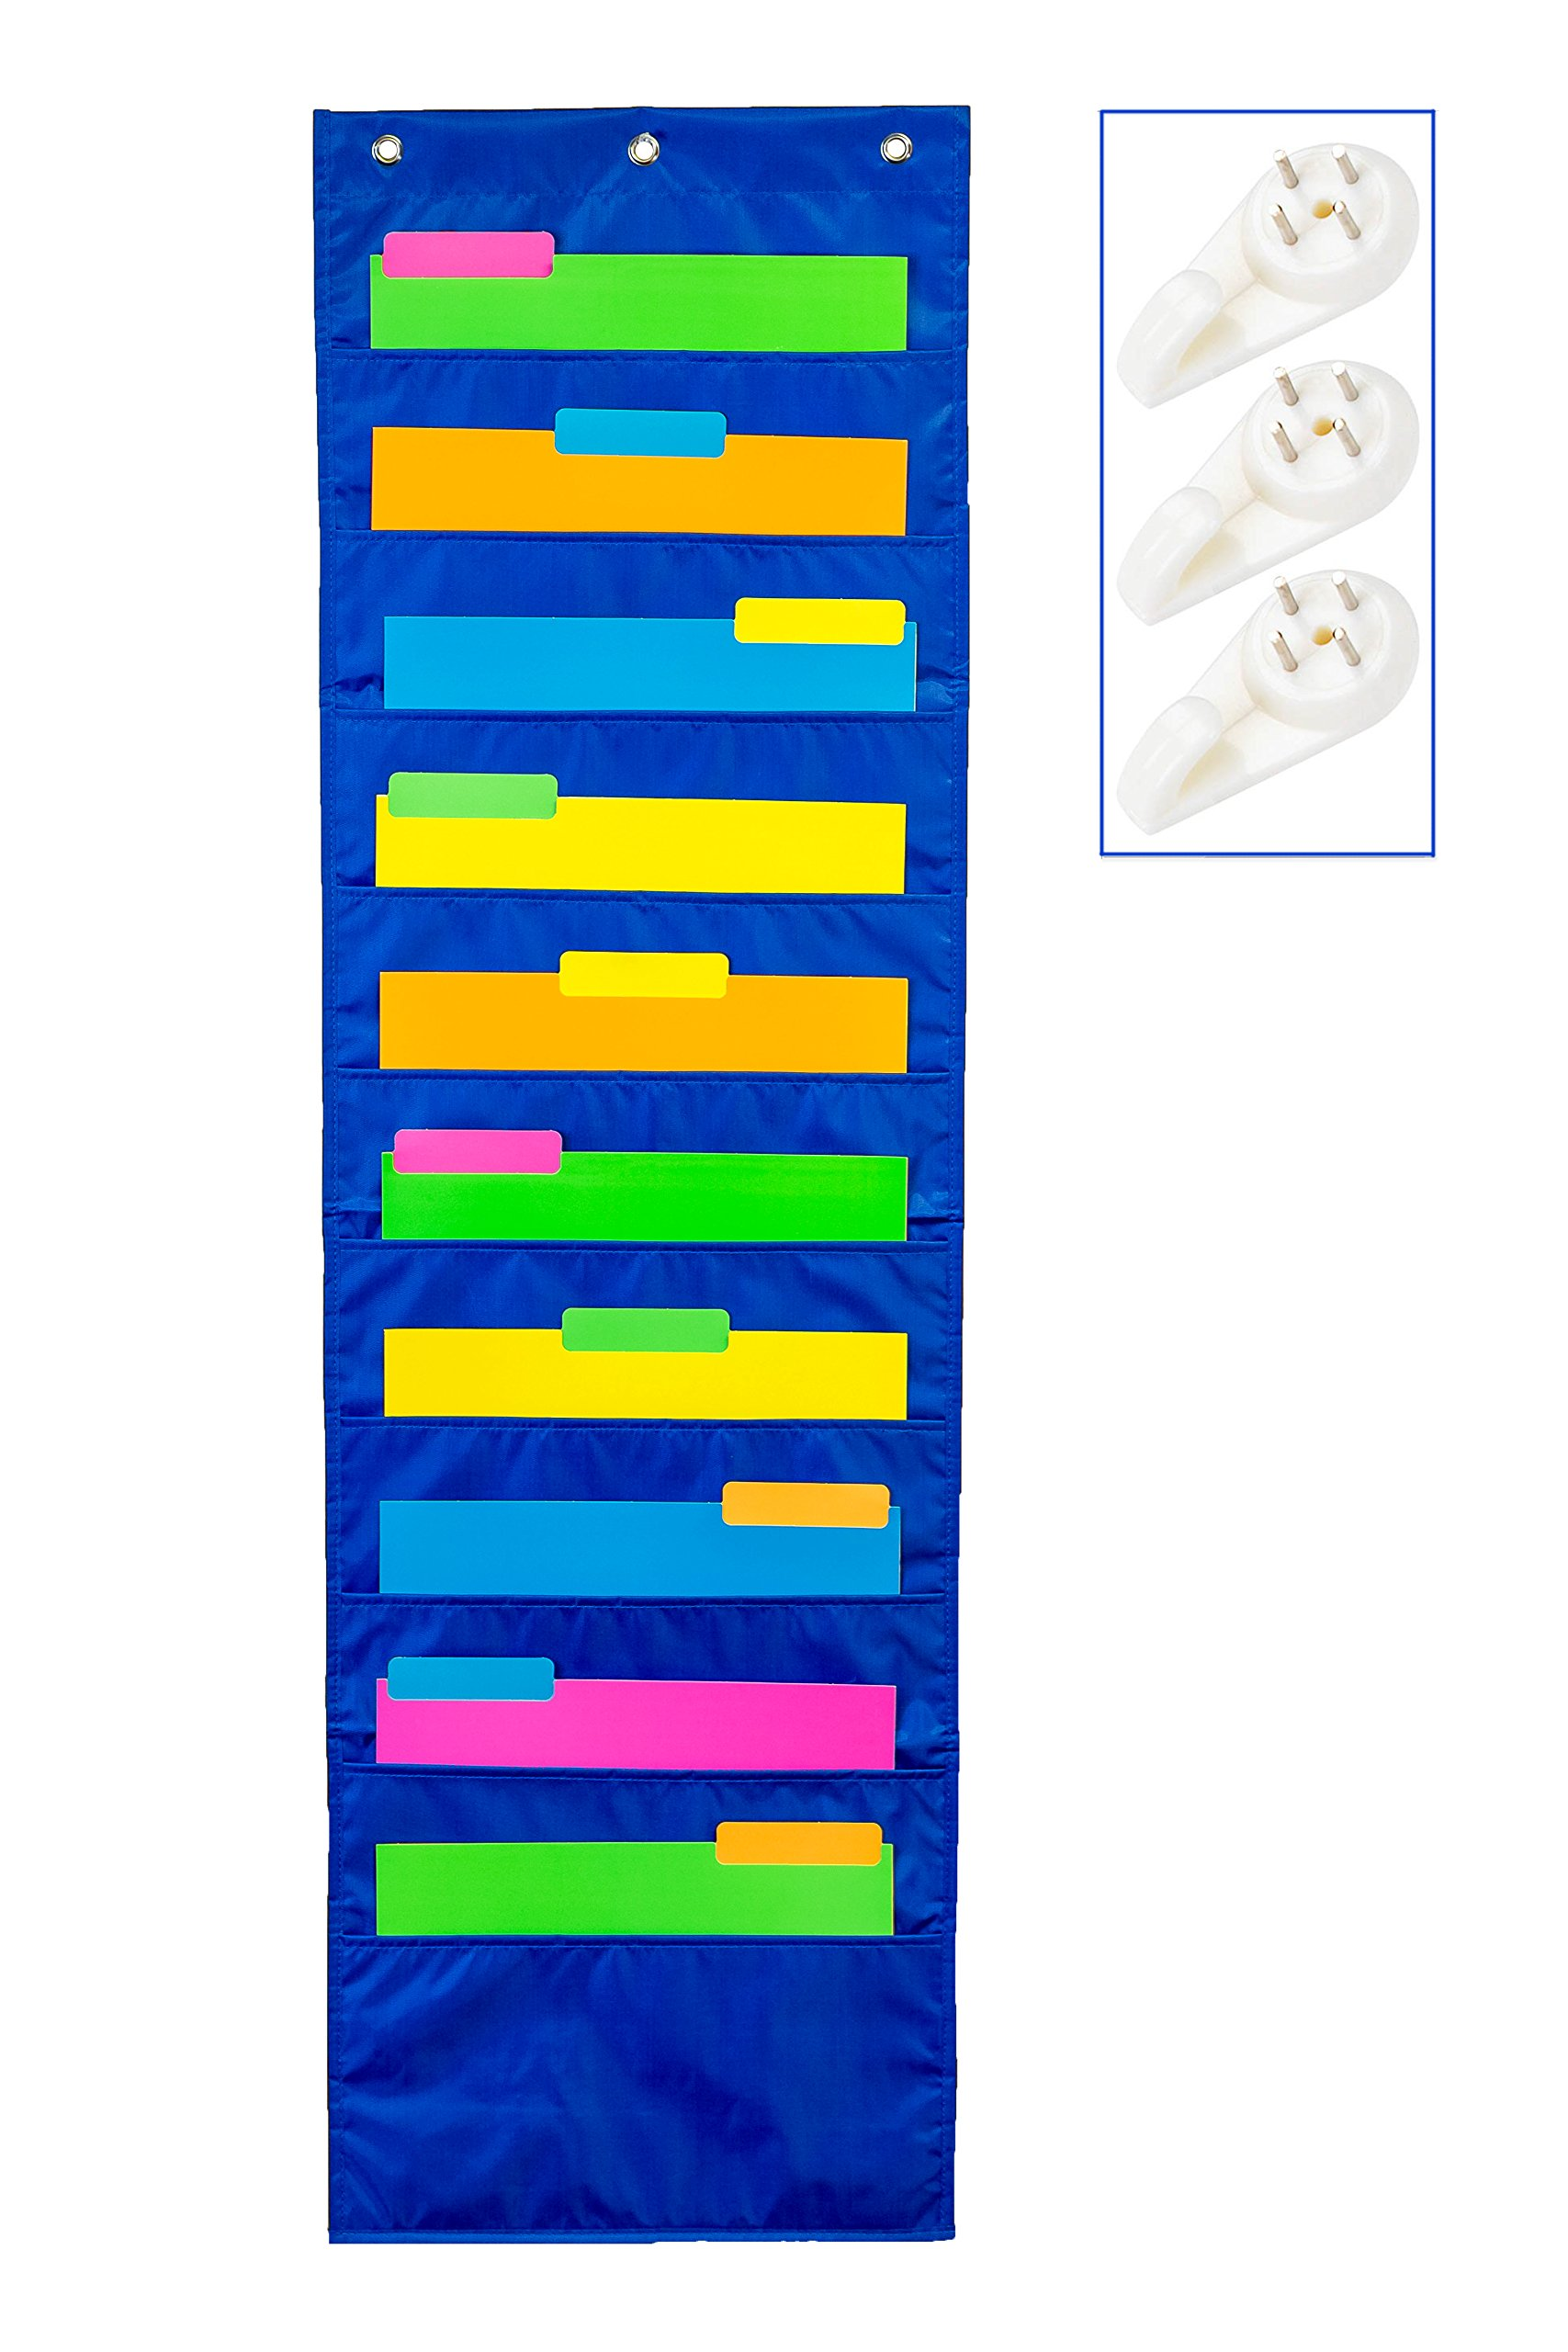 School Savings Hanging Document Organizer (Blue) – 10 Large Wall Pockets for Important Home, School or Office Paperwork, Letters or Files – Essential Work Supplies by School Savings (Image #1)